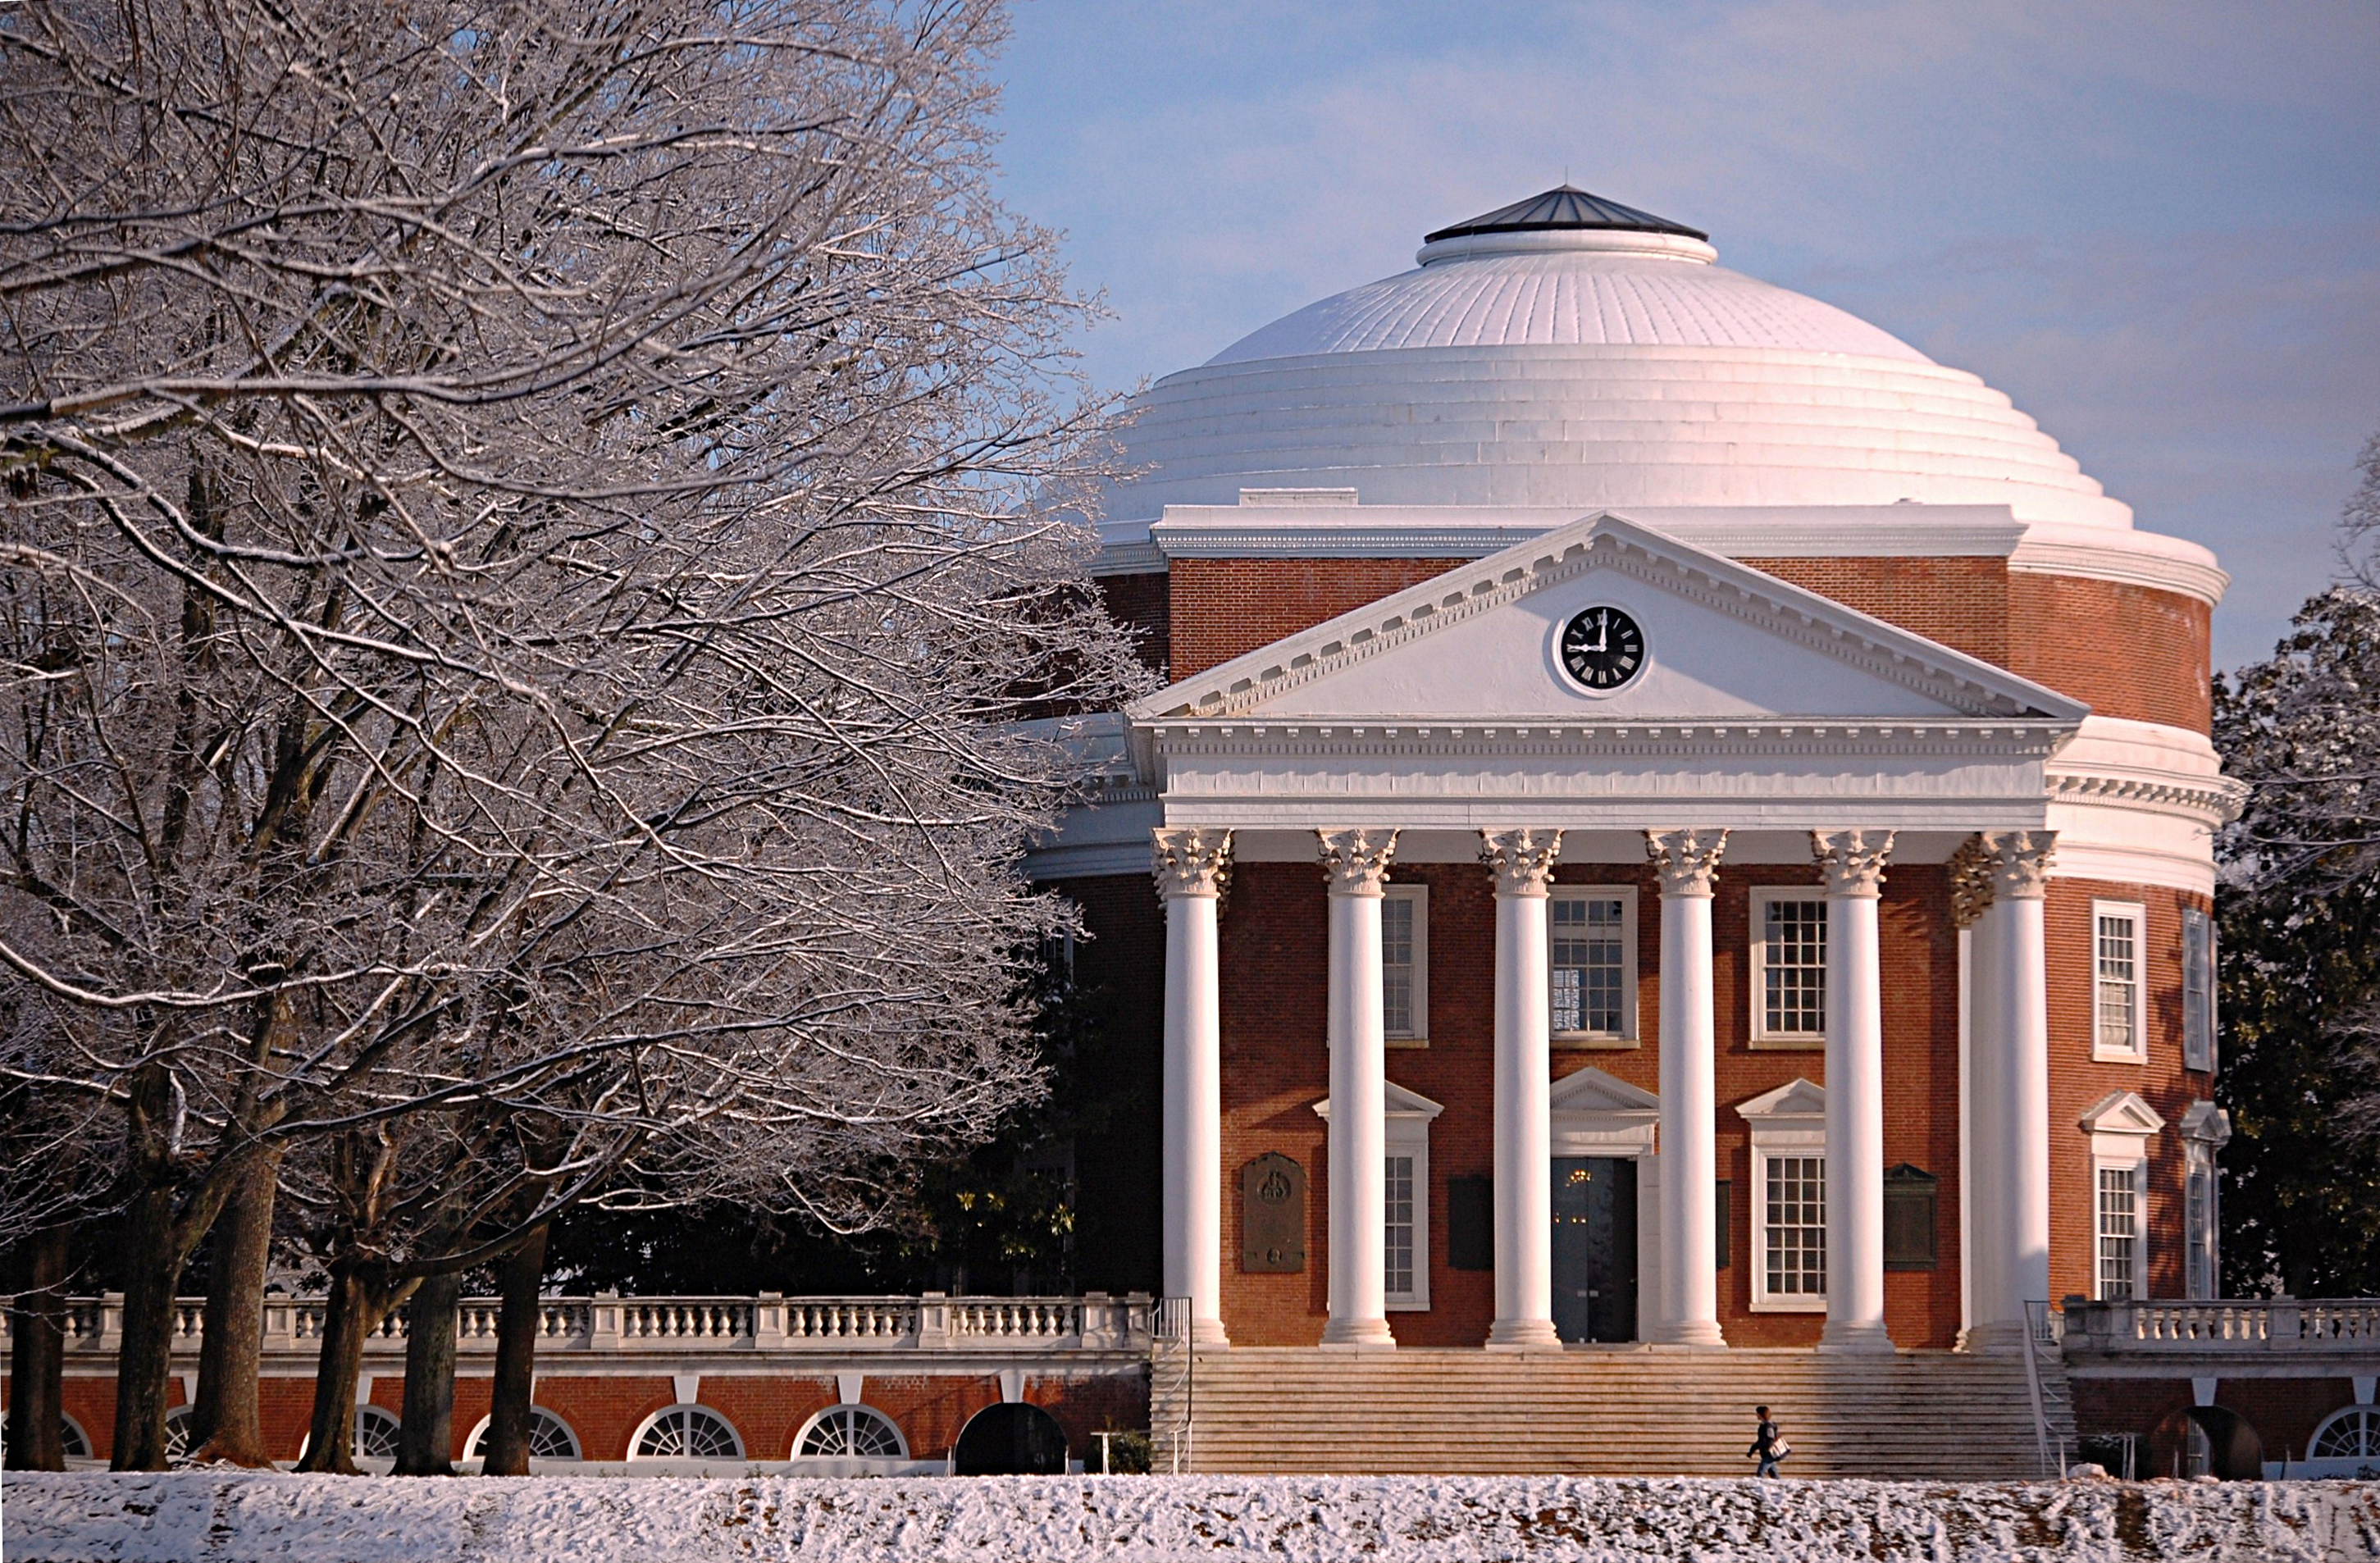 File:University-of-Virginia-Rotunda.jpg - Wikimedia Commons